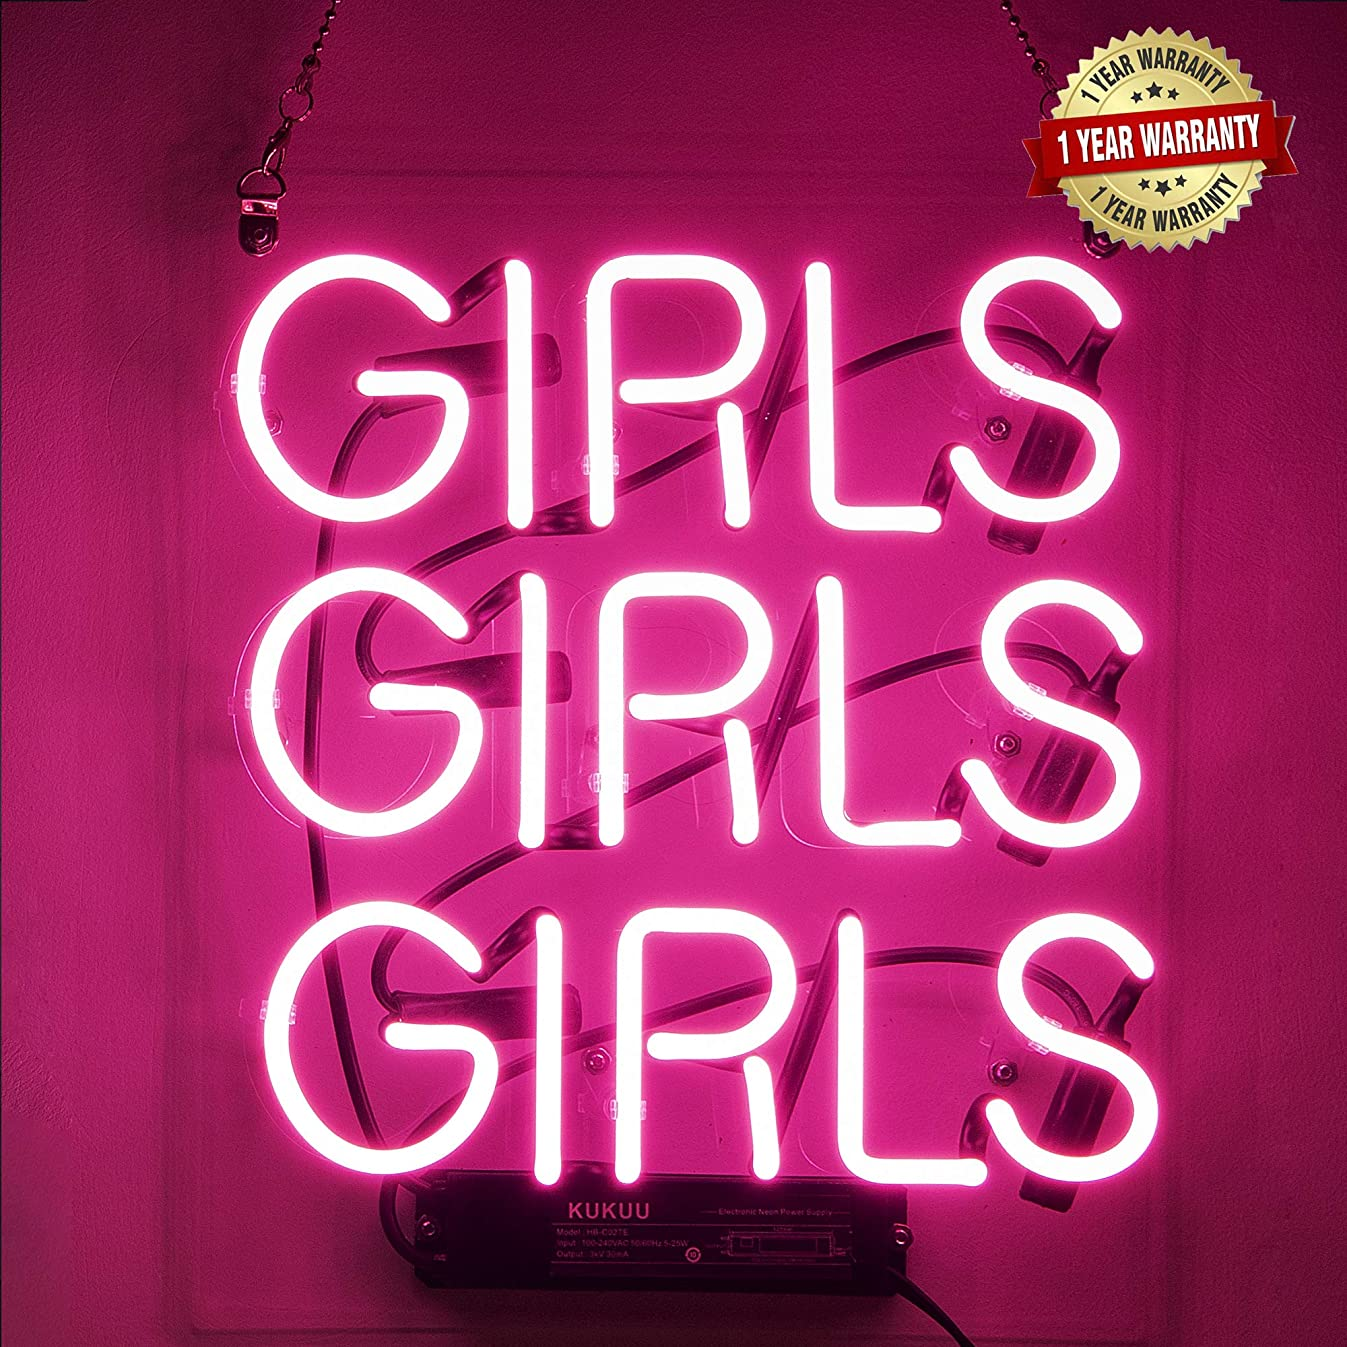 Neon Signs Girl Girls Girls Girls Neon Signs Girl Wall Decor Neon Light Sign Led Sign for Bedroom Neon Words Cool Art Neon Sign Cute Neon Lamps Home Room Beer Bar Custom Red Neon Wall Light 12